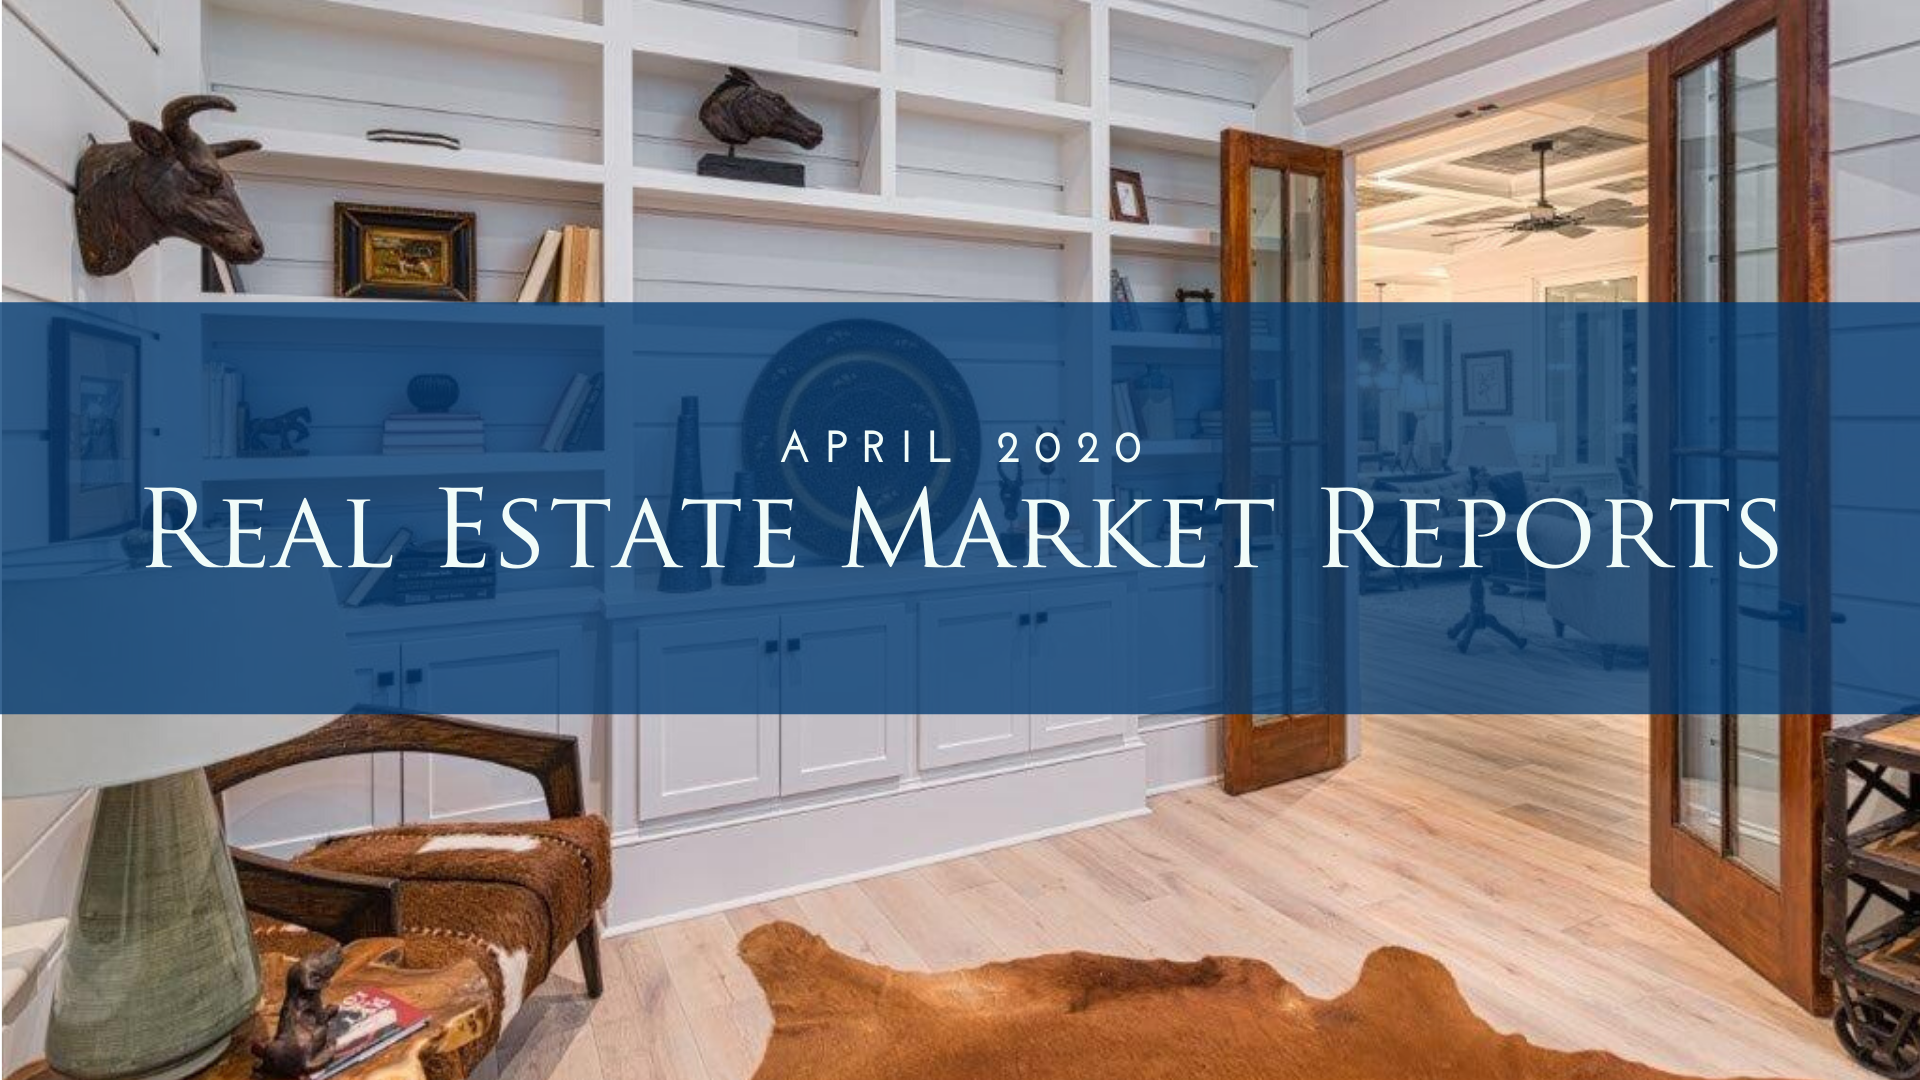 April 2020 Real Estate Market Report